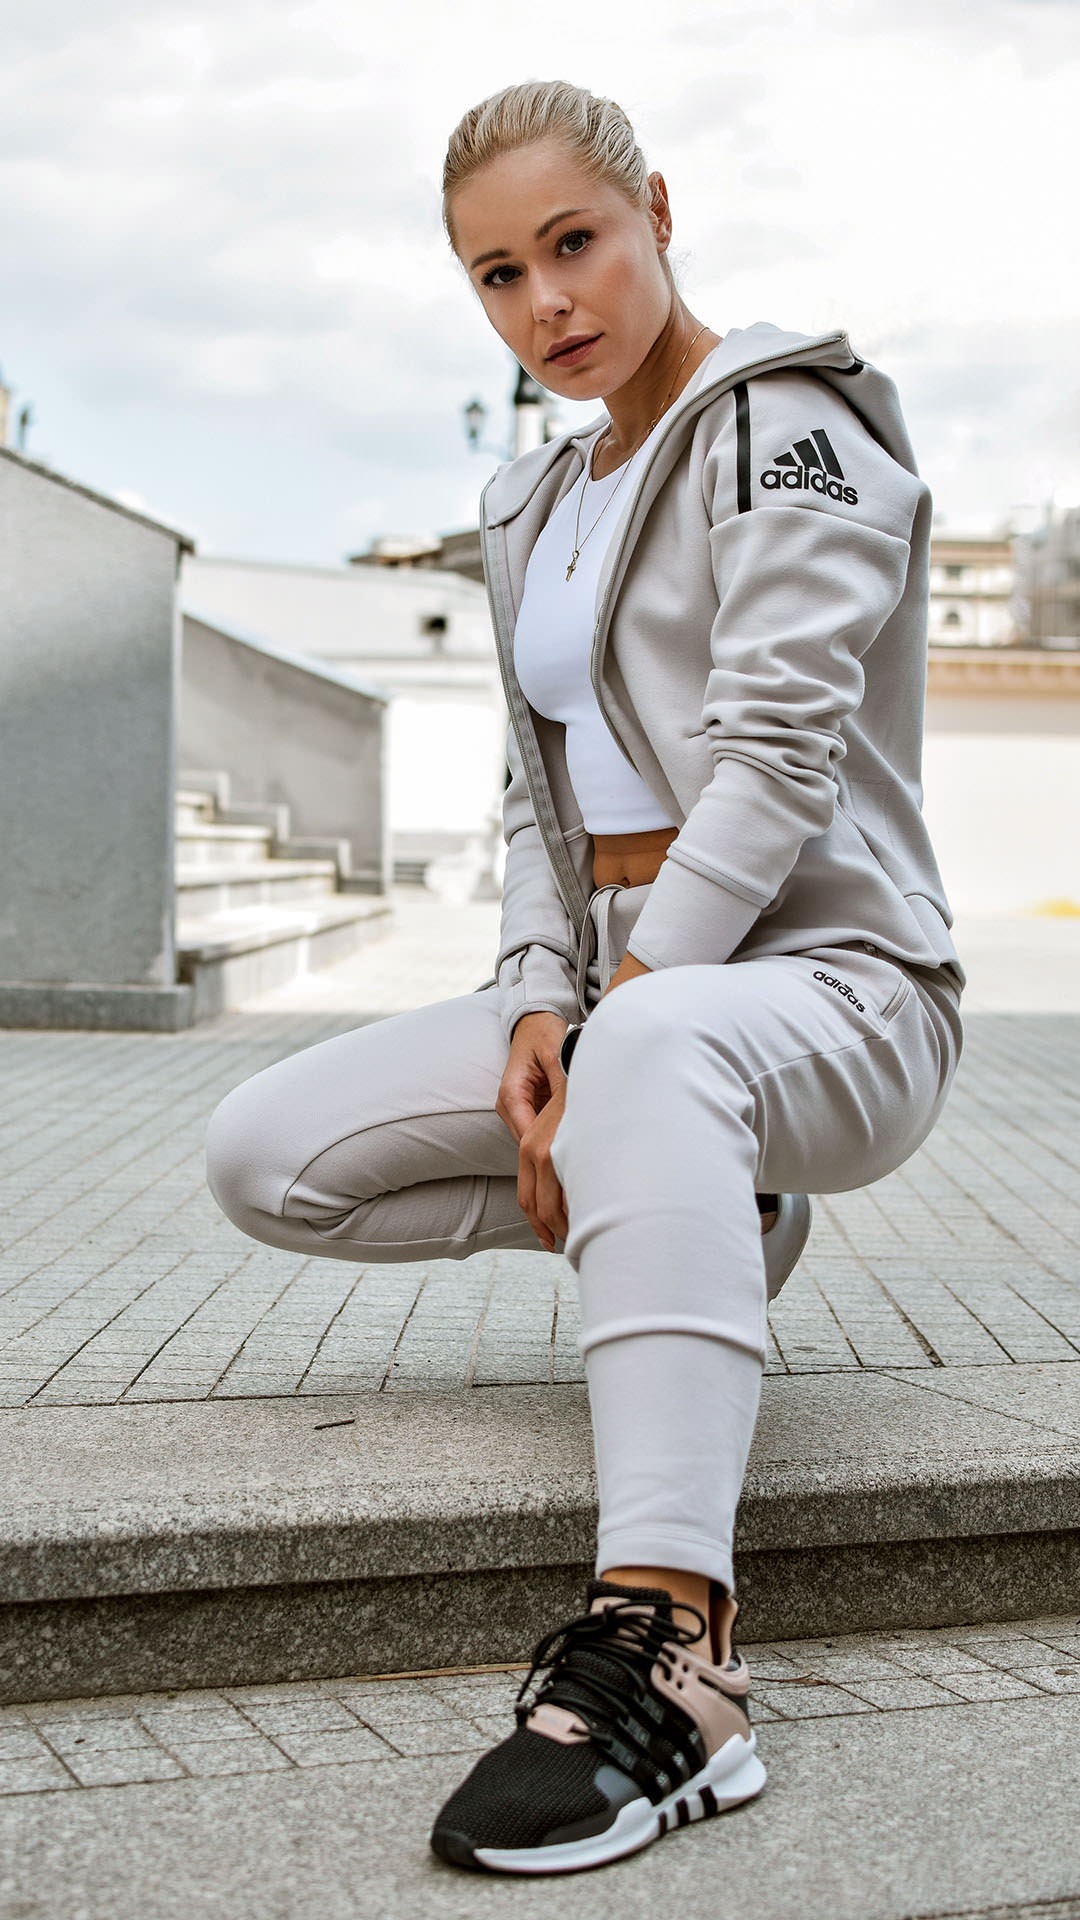 20+ Best Adidas iPhone Wallpapers For Motivation - Templatefor